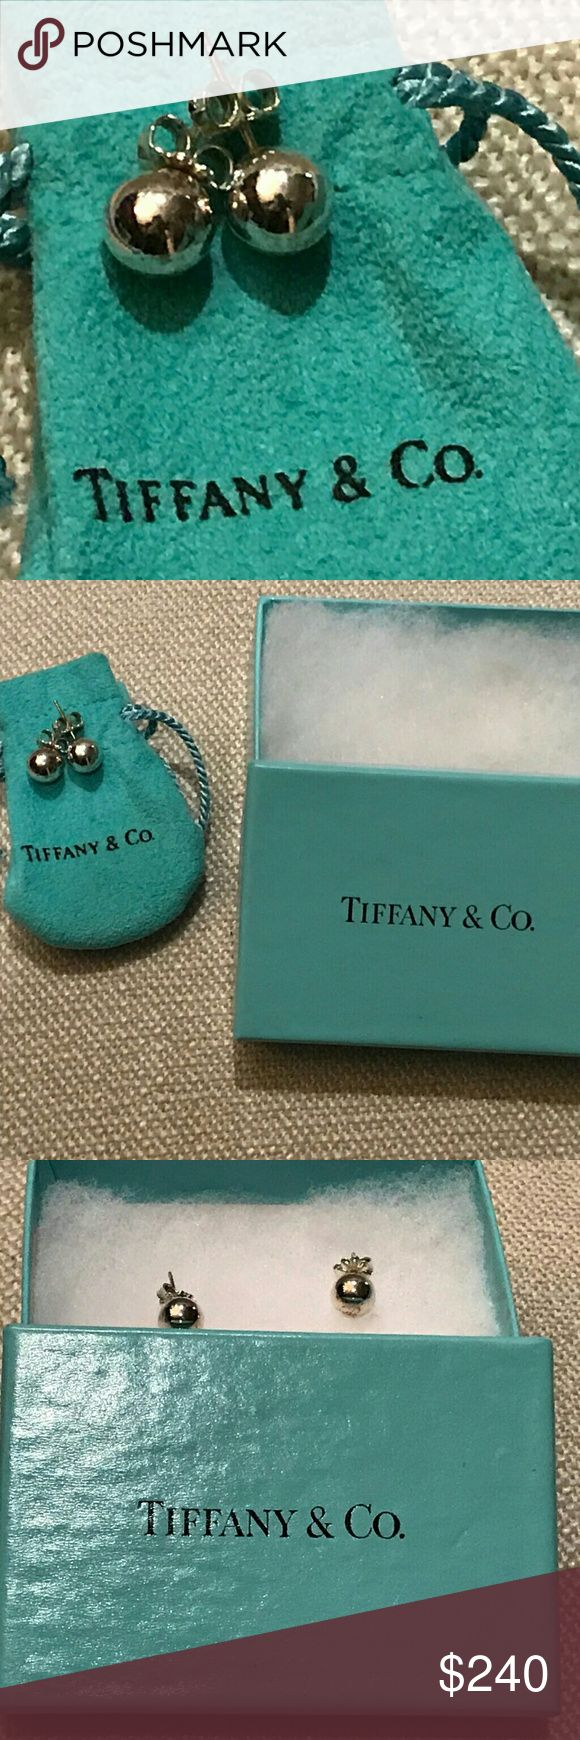 Tiffany and Co bead ball studded earrings Authentic Tiffany and Co earrings with signature post on backs. Comes with pouch and box! Tiffany & Co. Jewelry Earrings